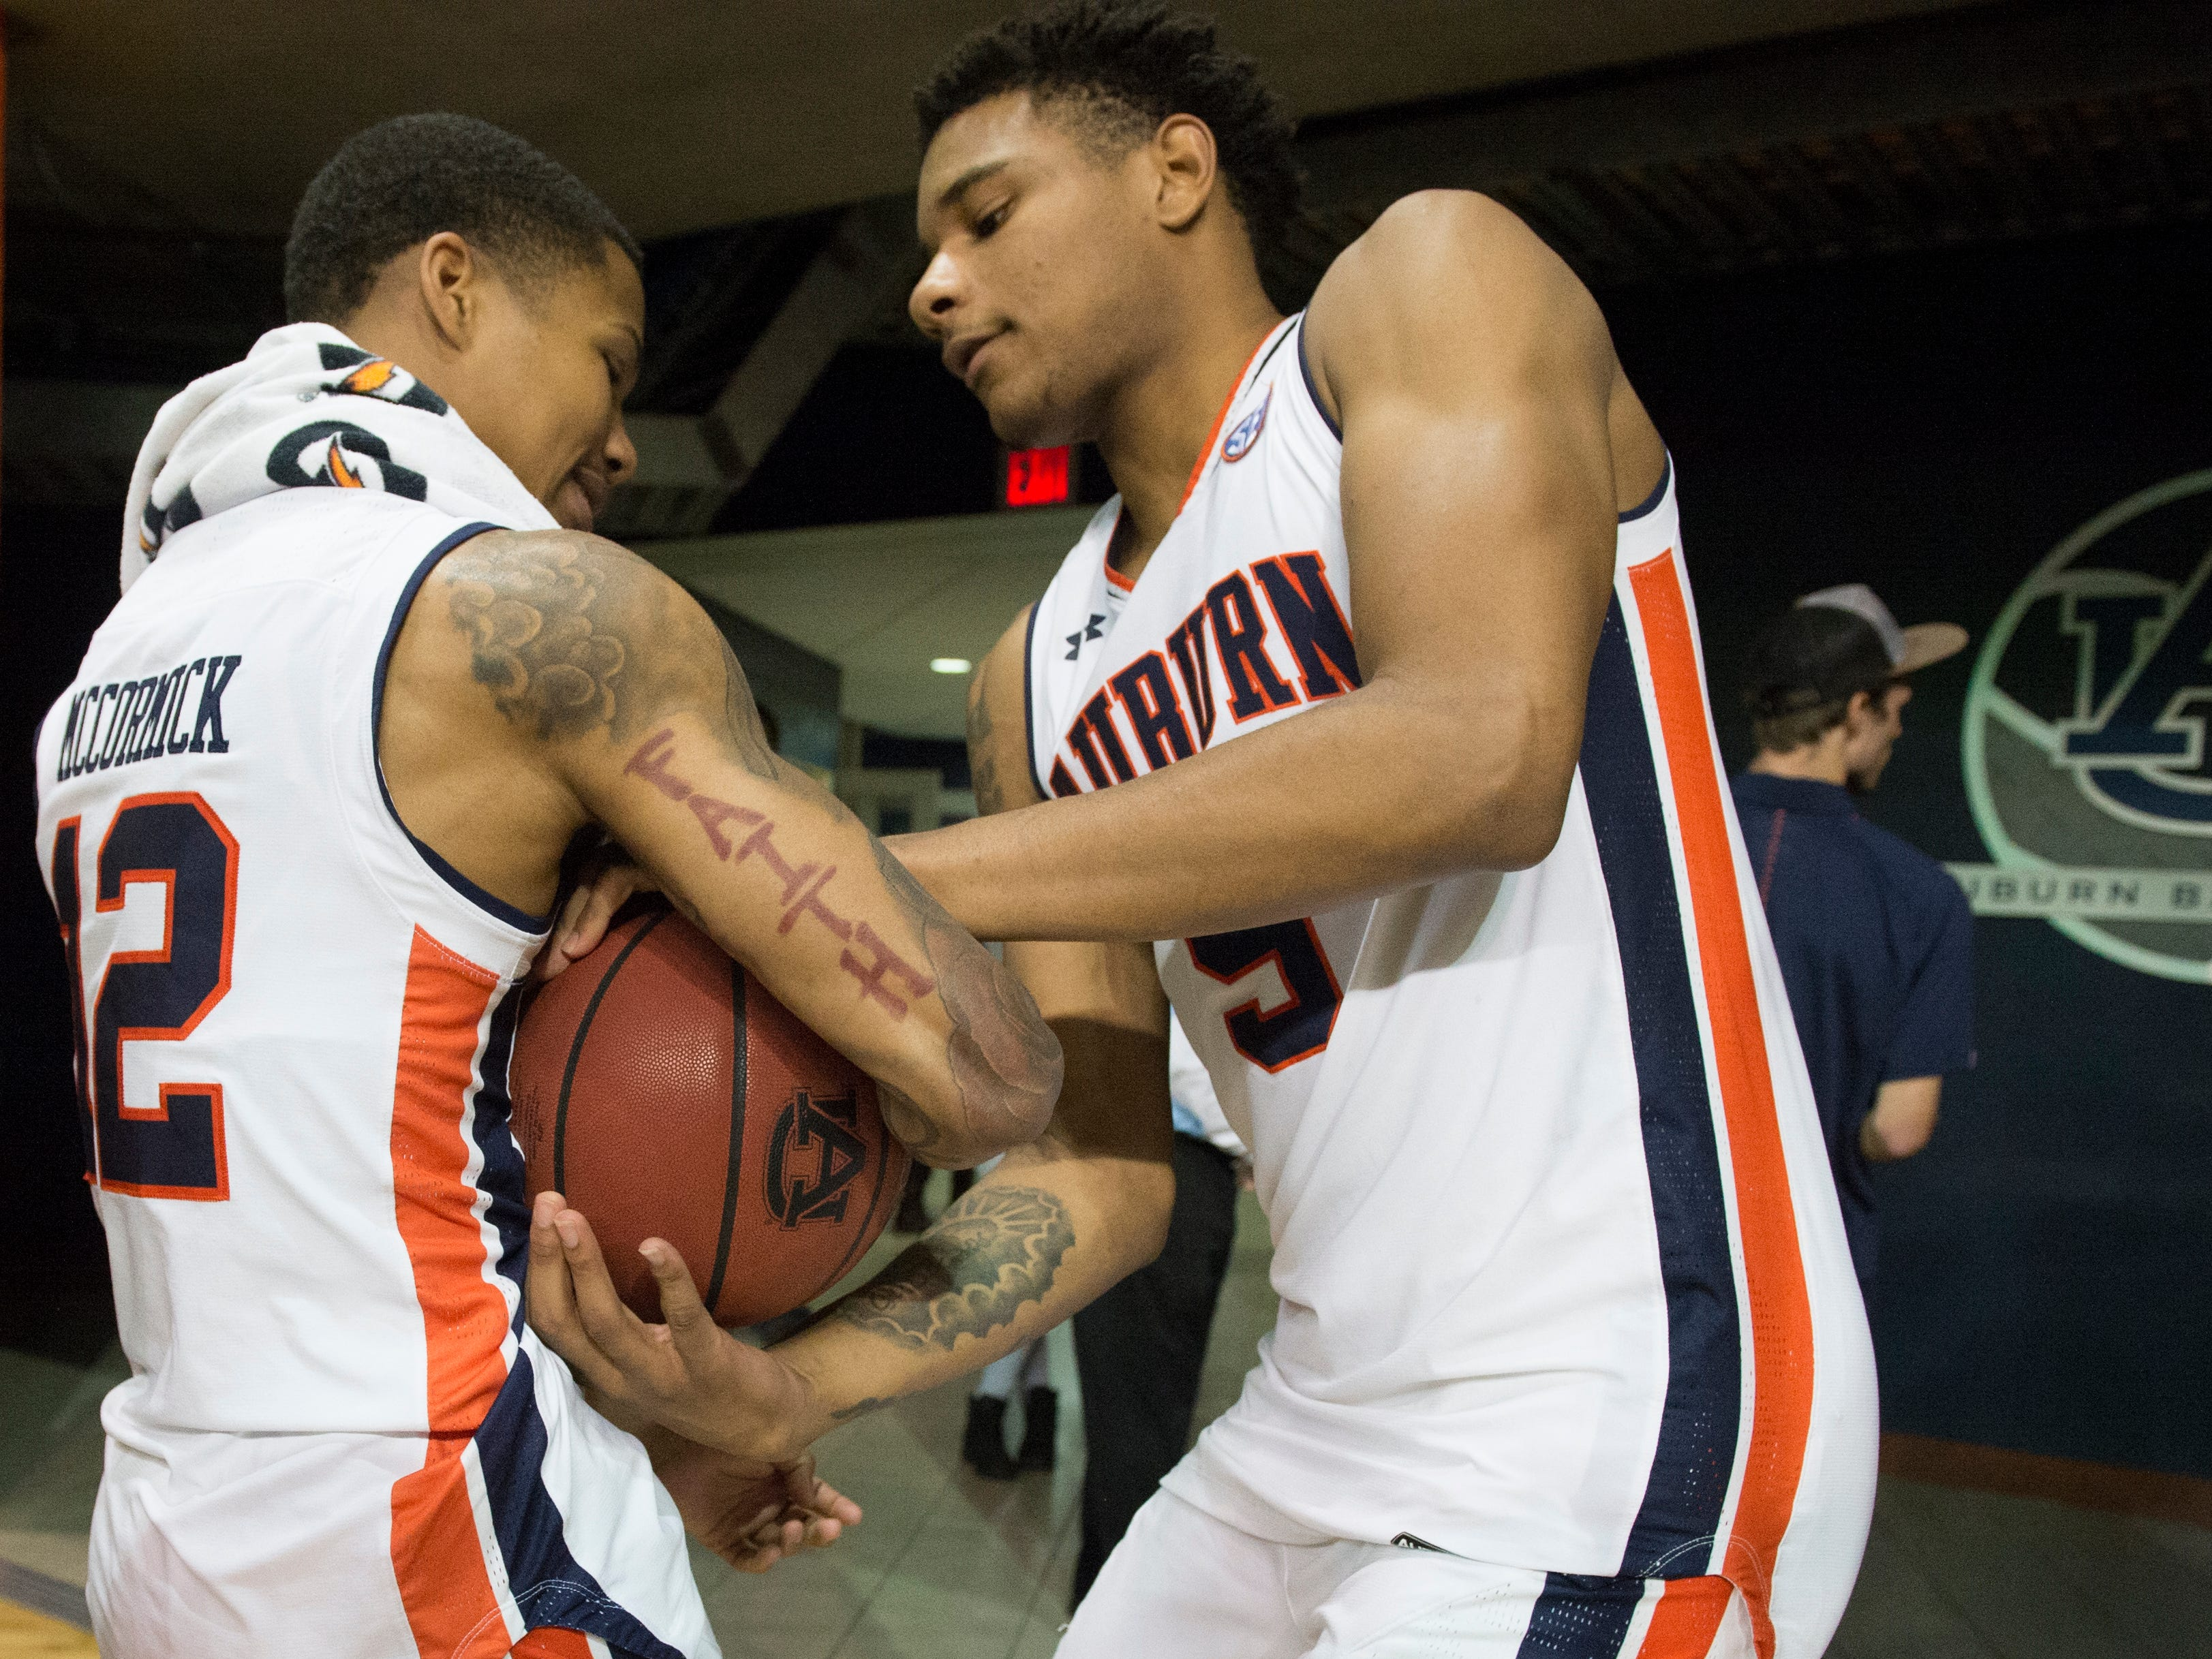 Auburn guard J'Von McCormick (12) and Chuma Okeke (5) fight over a ball as they walk off the court at Auburn Arena in Auburn, Ala., on Wednesday, Nov. 28, 2018. Auburn defeated Saint Peter's 99-49.